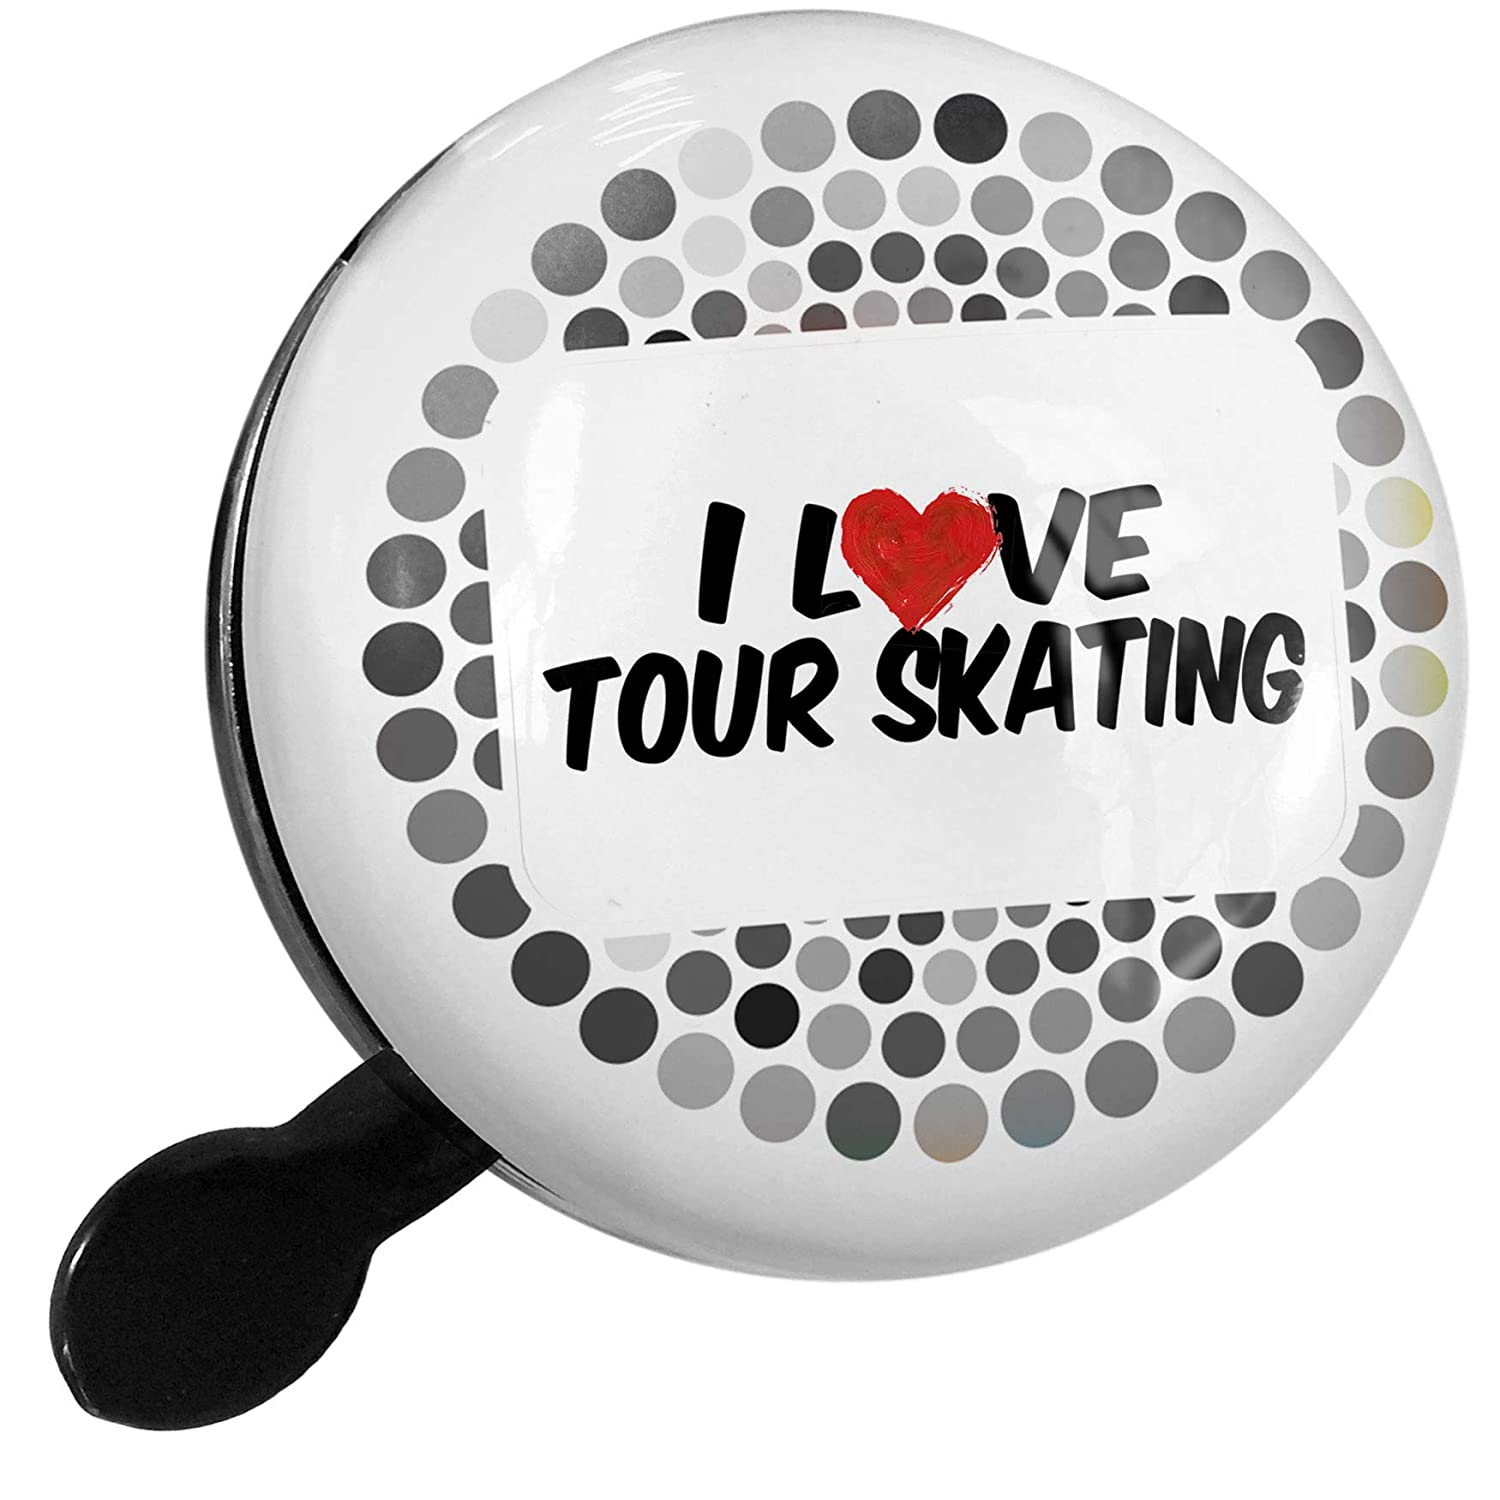 Amazon.com : NEONBLOND Bike Bell I Love Tour Skating Scooter ...